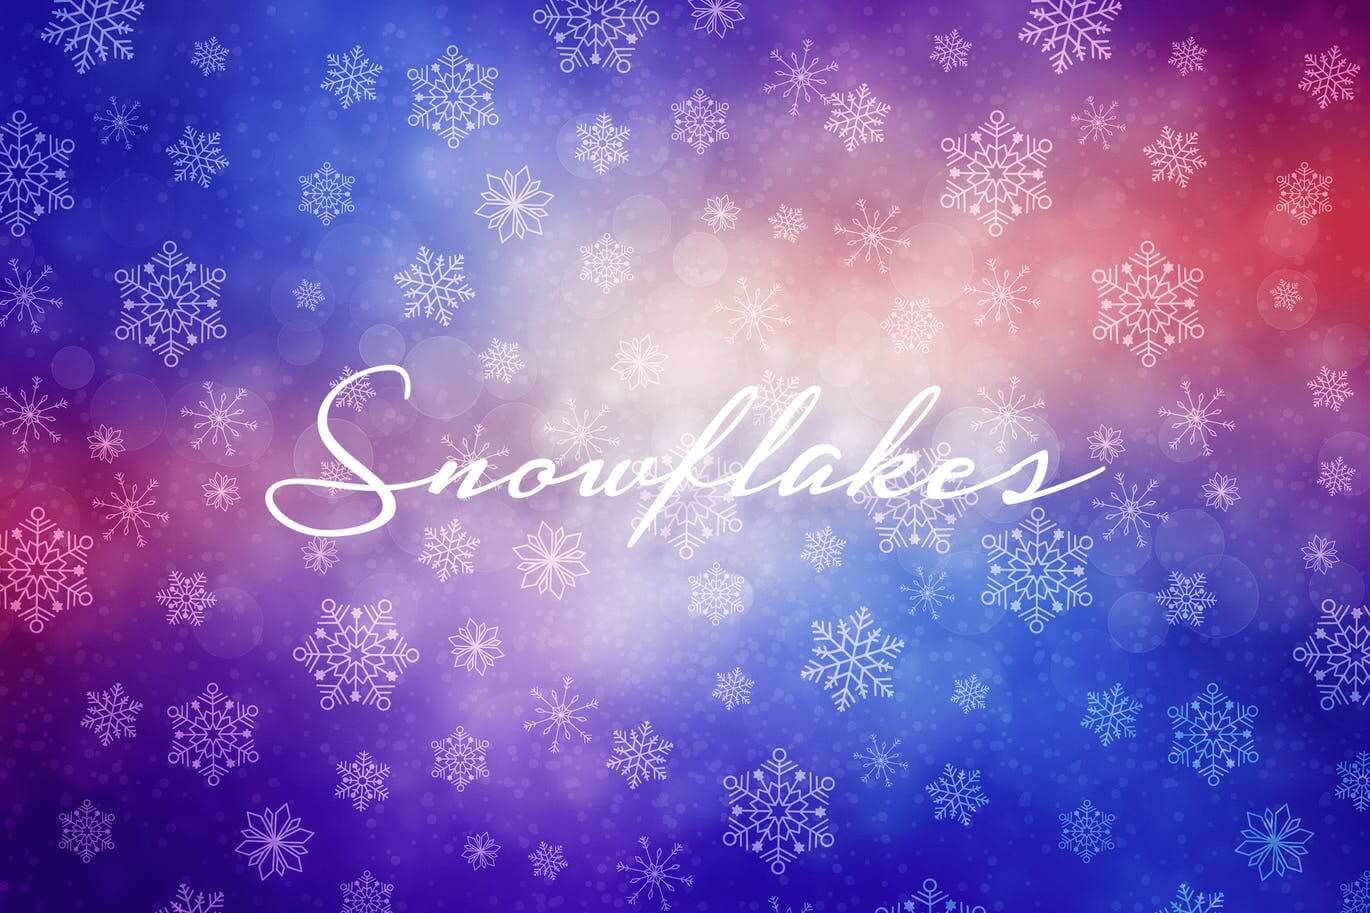 Winter Snowflakes Backgrounds